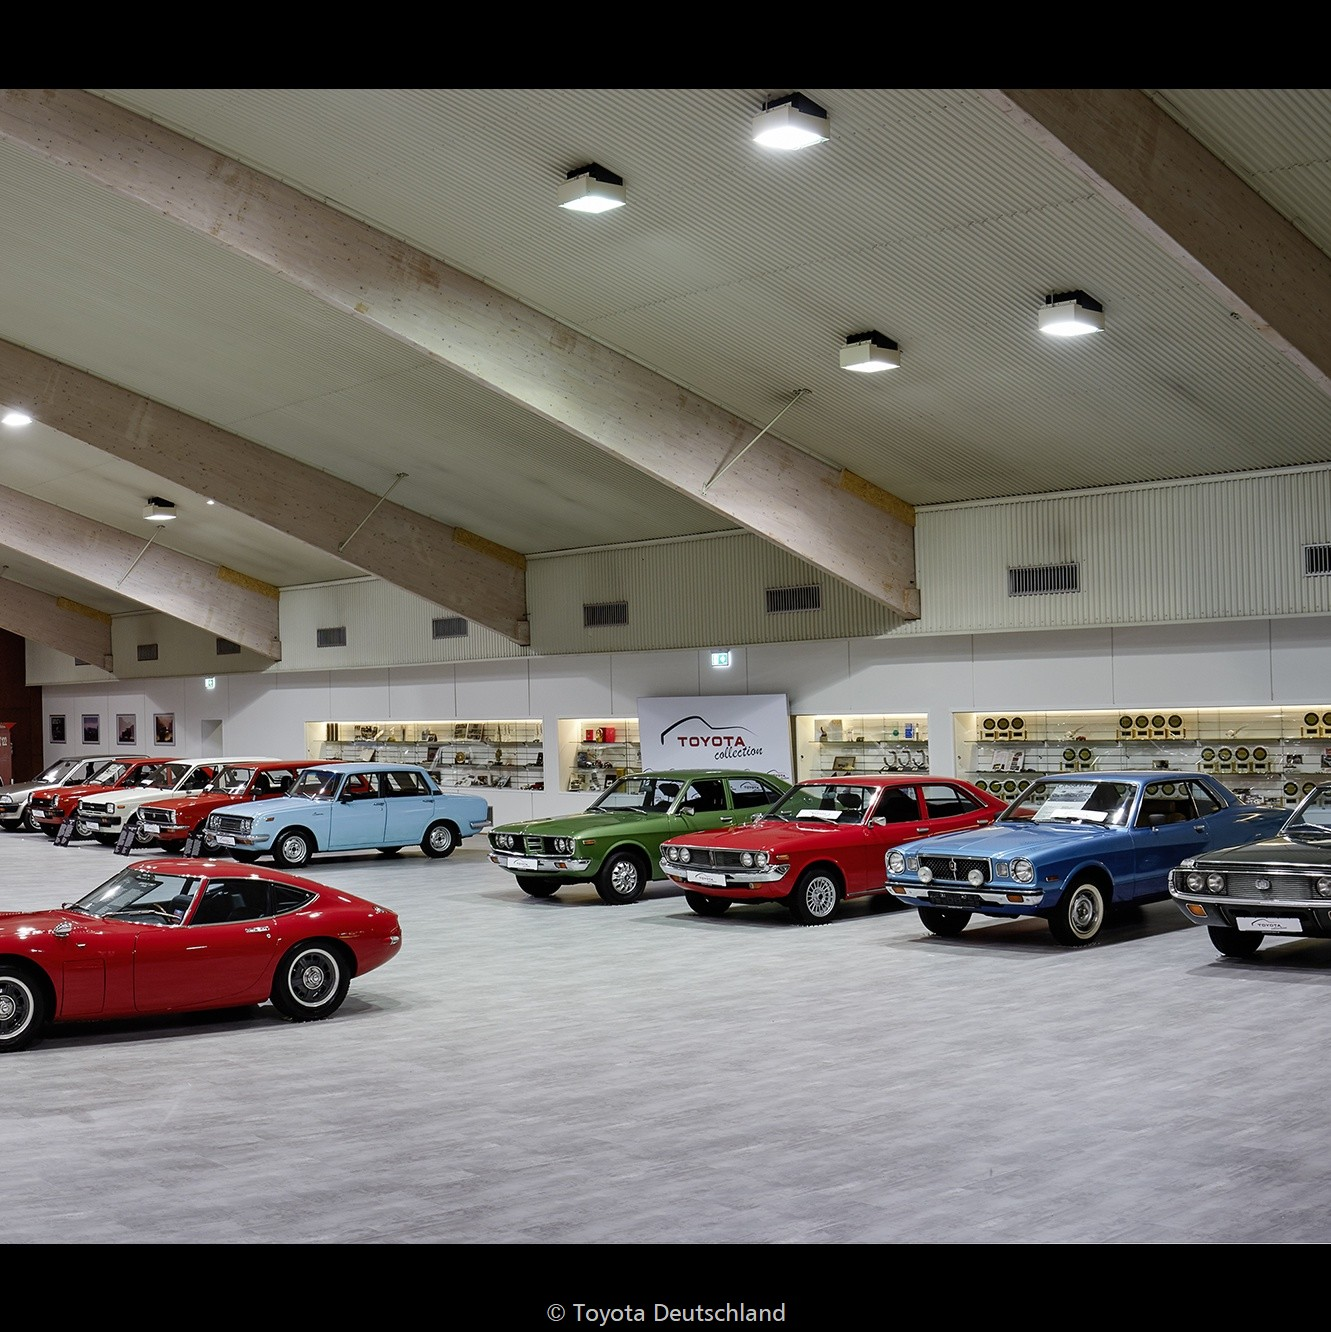 2017-11-23 toyota collection 21